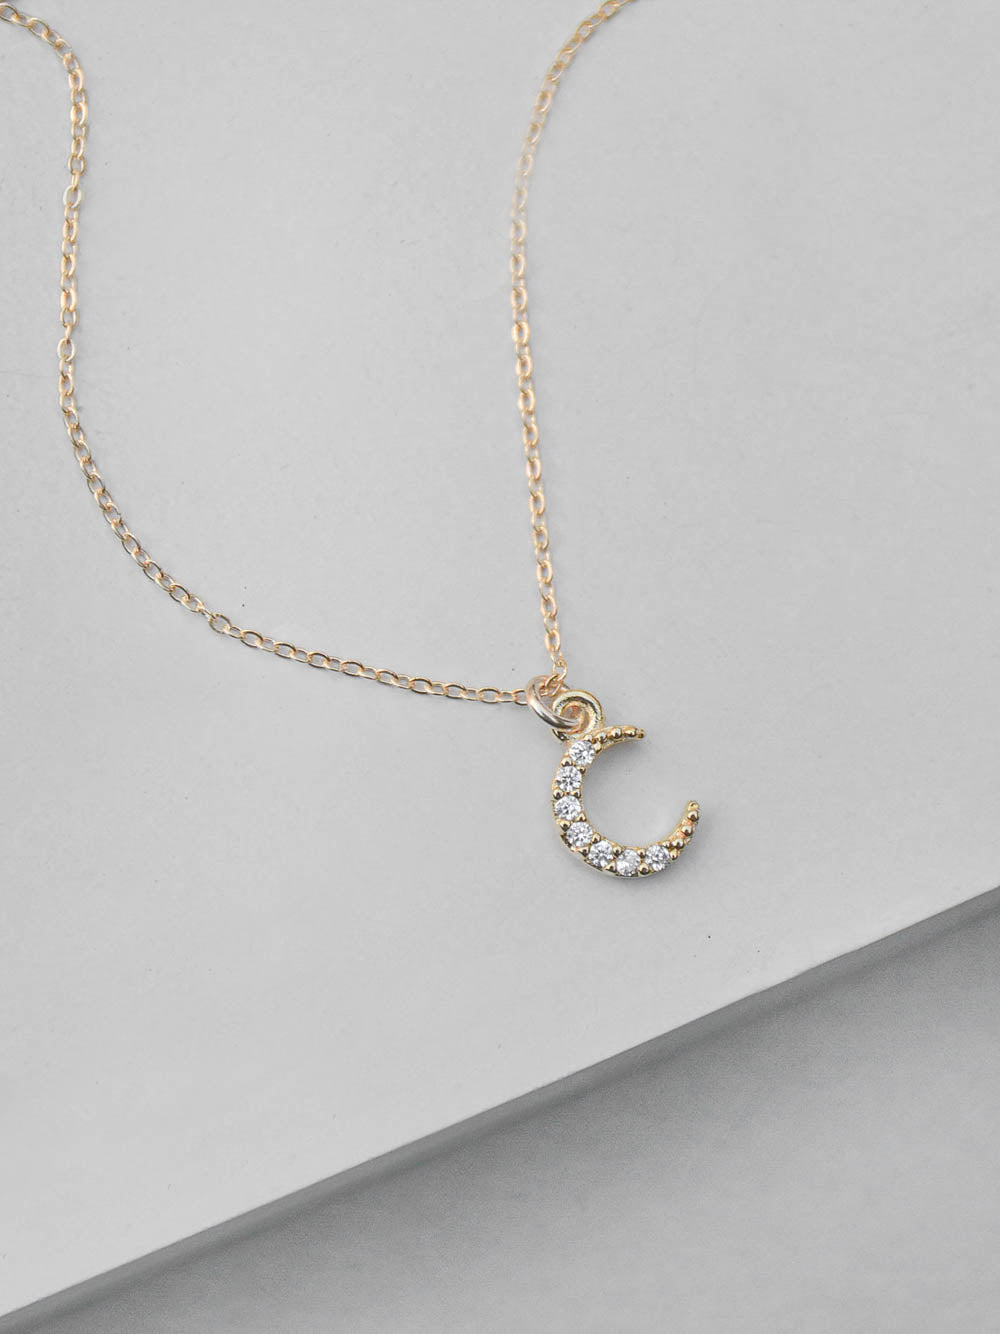 Mini Crescent CZ Charm Gold  Necklace by The Faint Hearted Jewelry